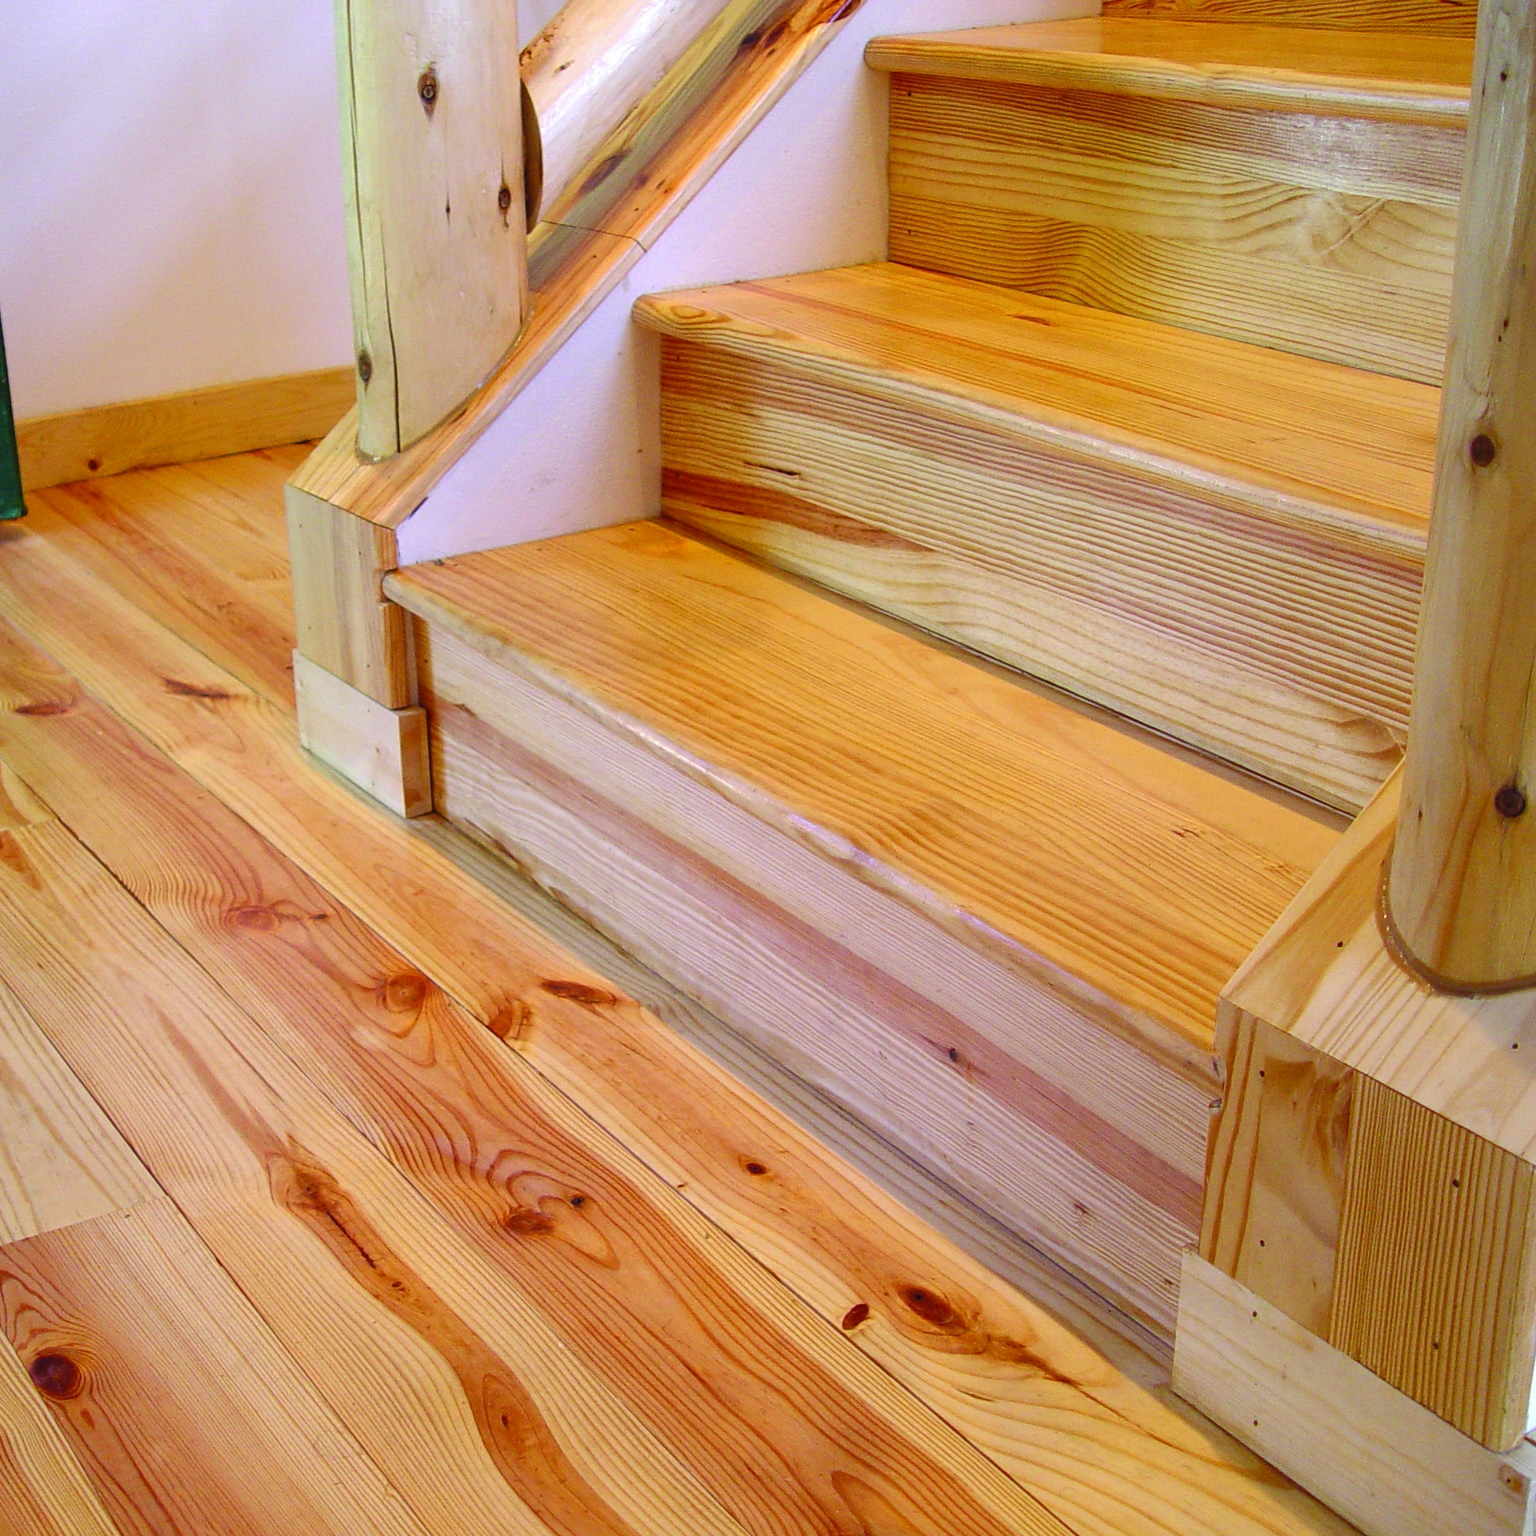 Southern Pine Stair Treads Wi Weekes Forest Products | Staining Pine Stair Treads | Painting | White Pine | Wooden | Tile | Stained White Oak